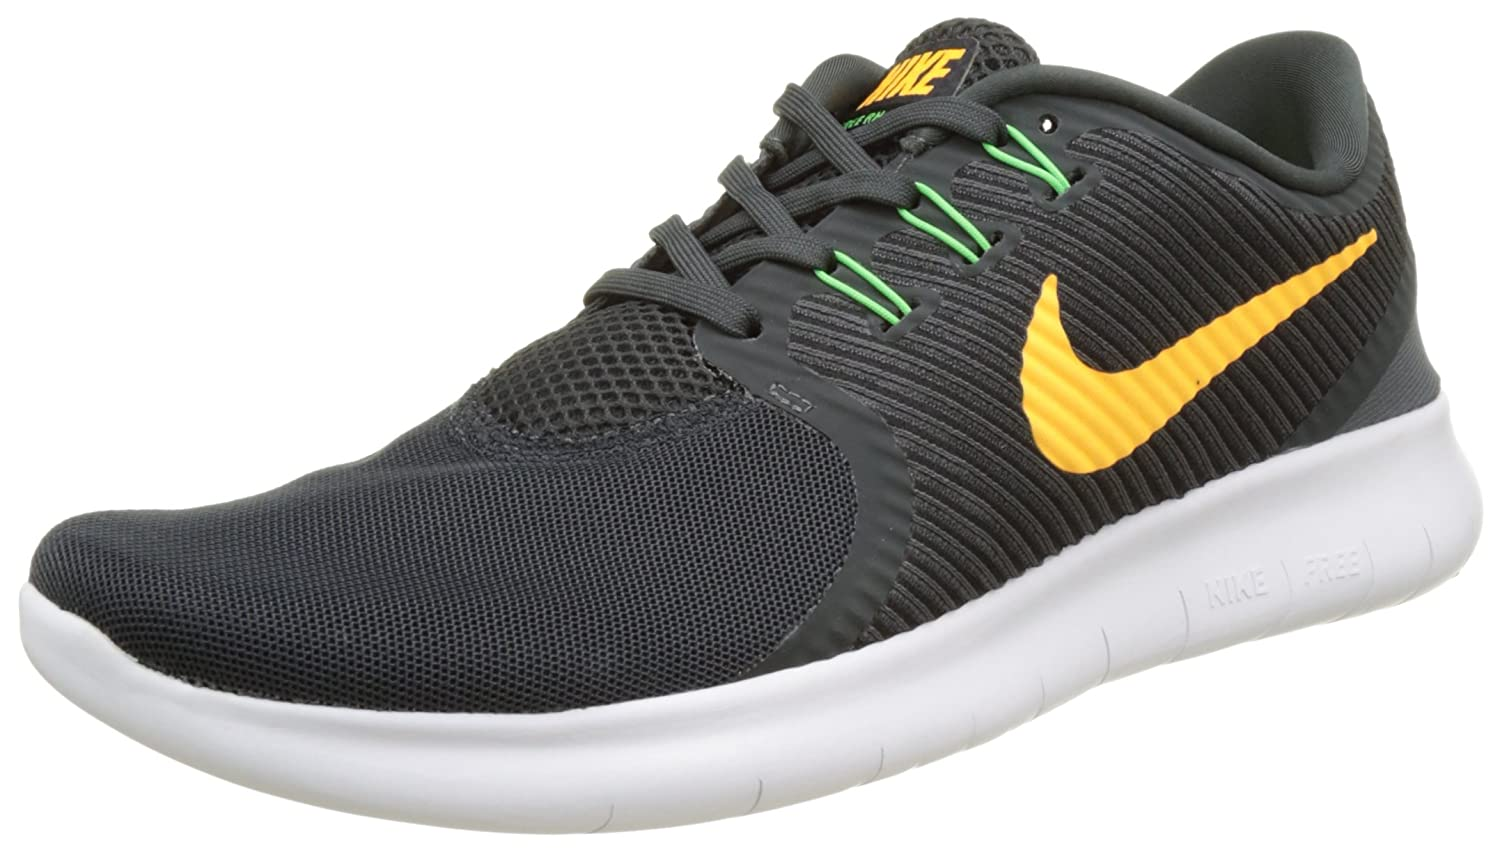 01a219b364972 Nike Men s Free Rn CMTR Running Shoes  Amazon.co.uk  Shoes   Bags